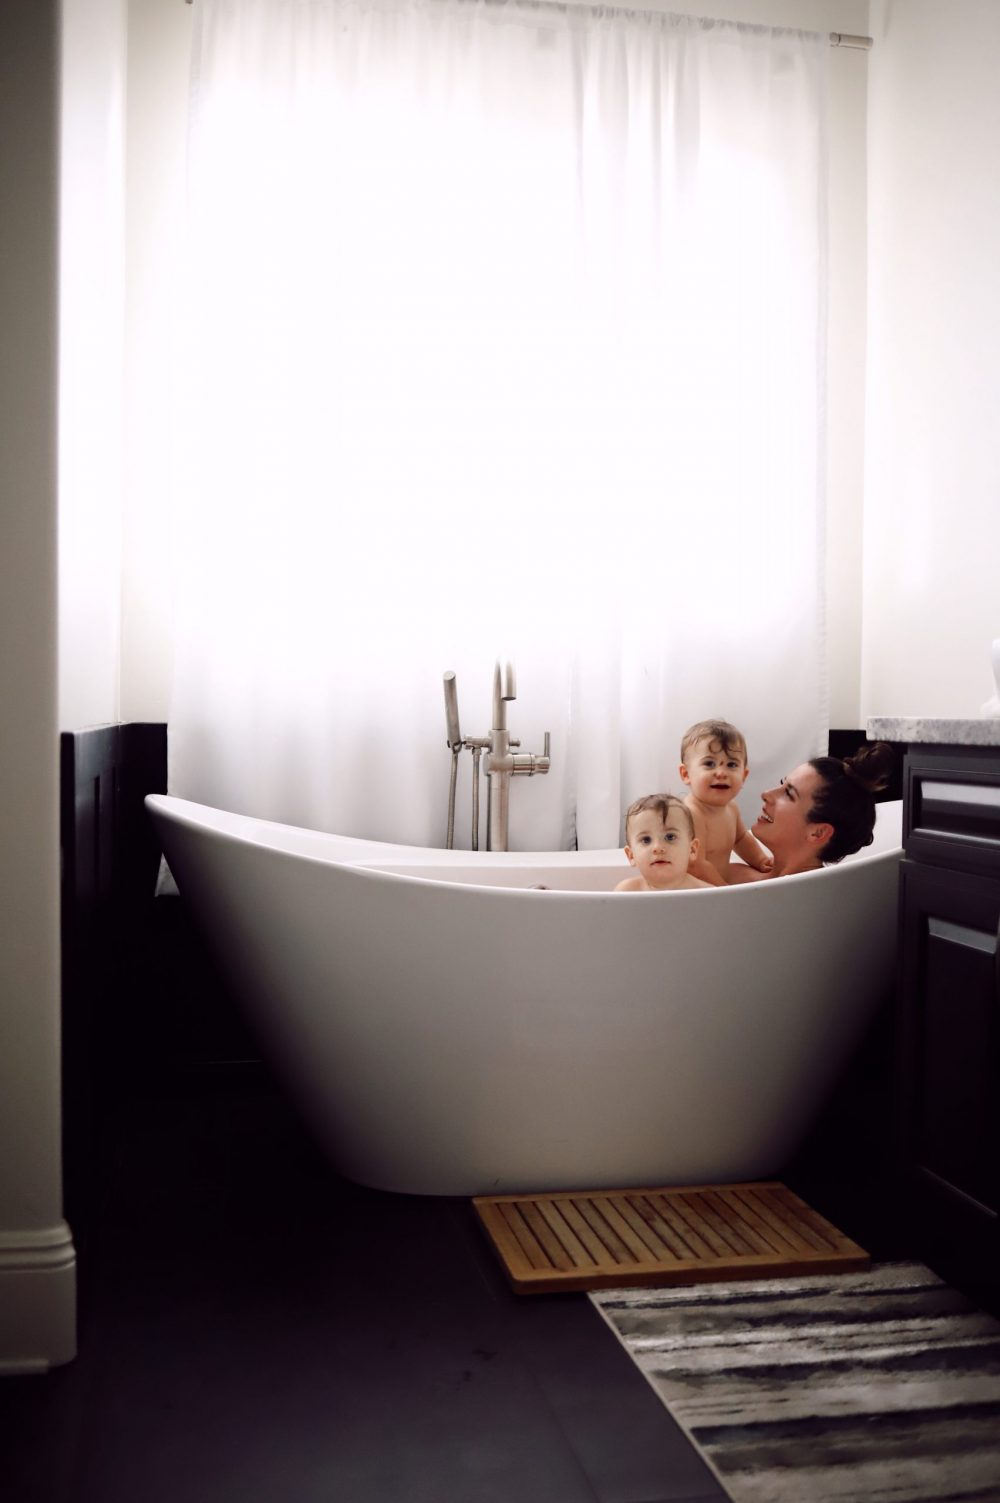 One of the Best Secret Winter Sun Destinations, Scottsdale Arizona. Family-friendly property rental at Bella's Villa Voltaire |Guide by popular Florida travel blog, Fresh Mommy Blog: image of a mom and her babies sitting in a soaking tub at Bella's Villa Voltaire.